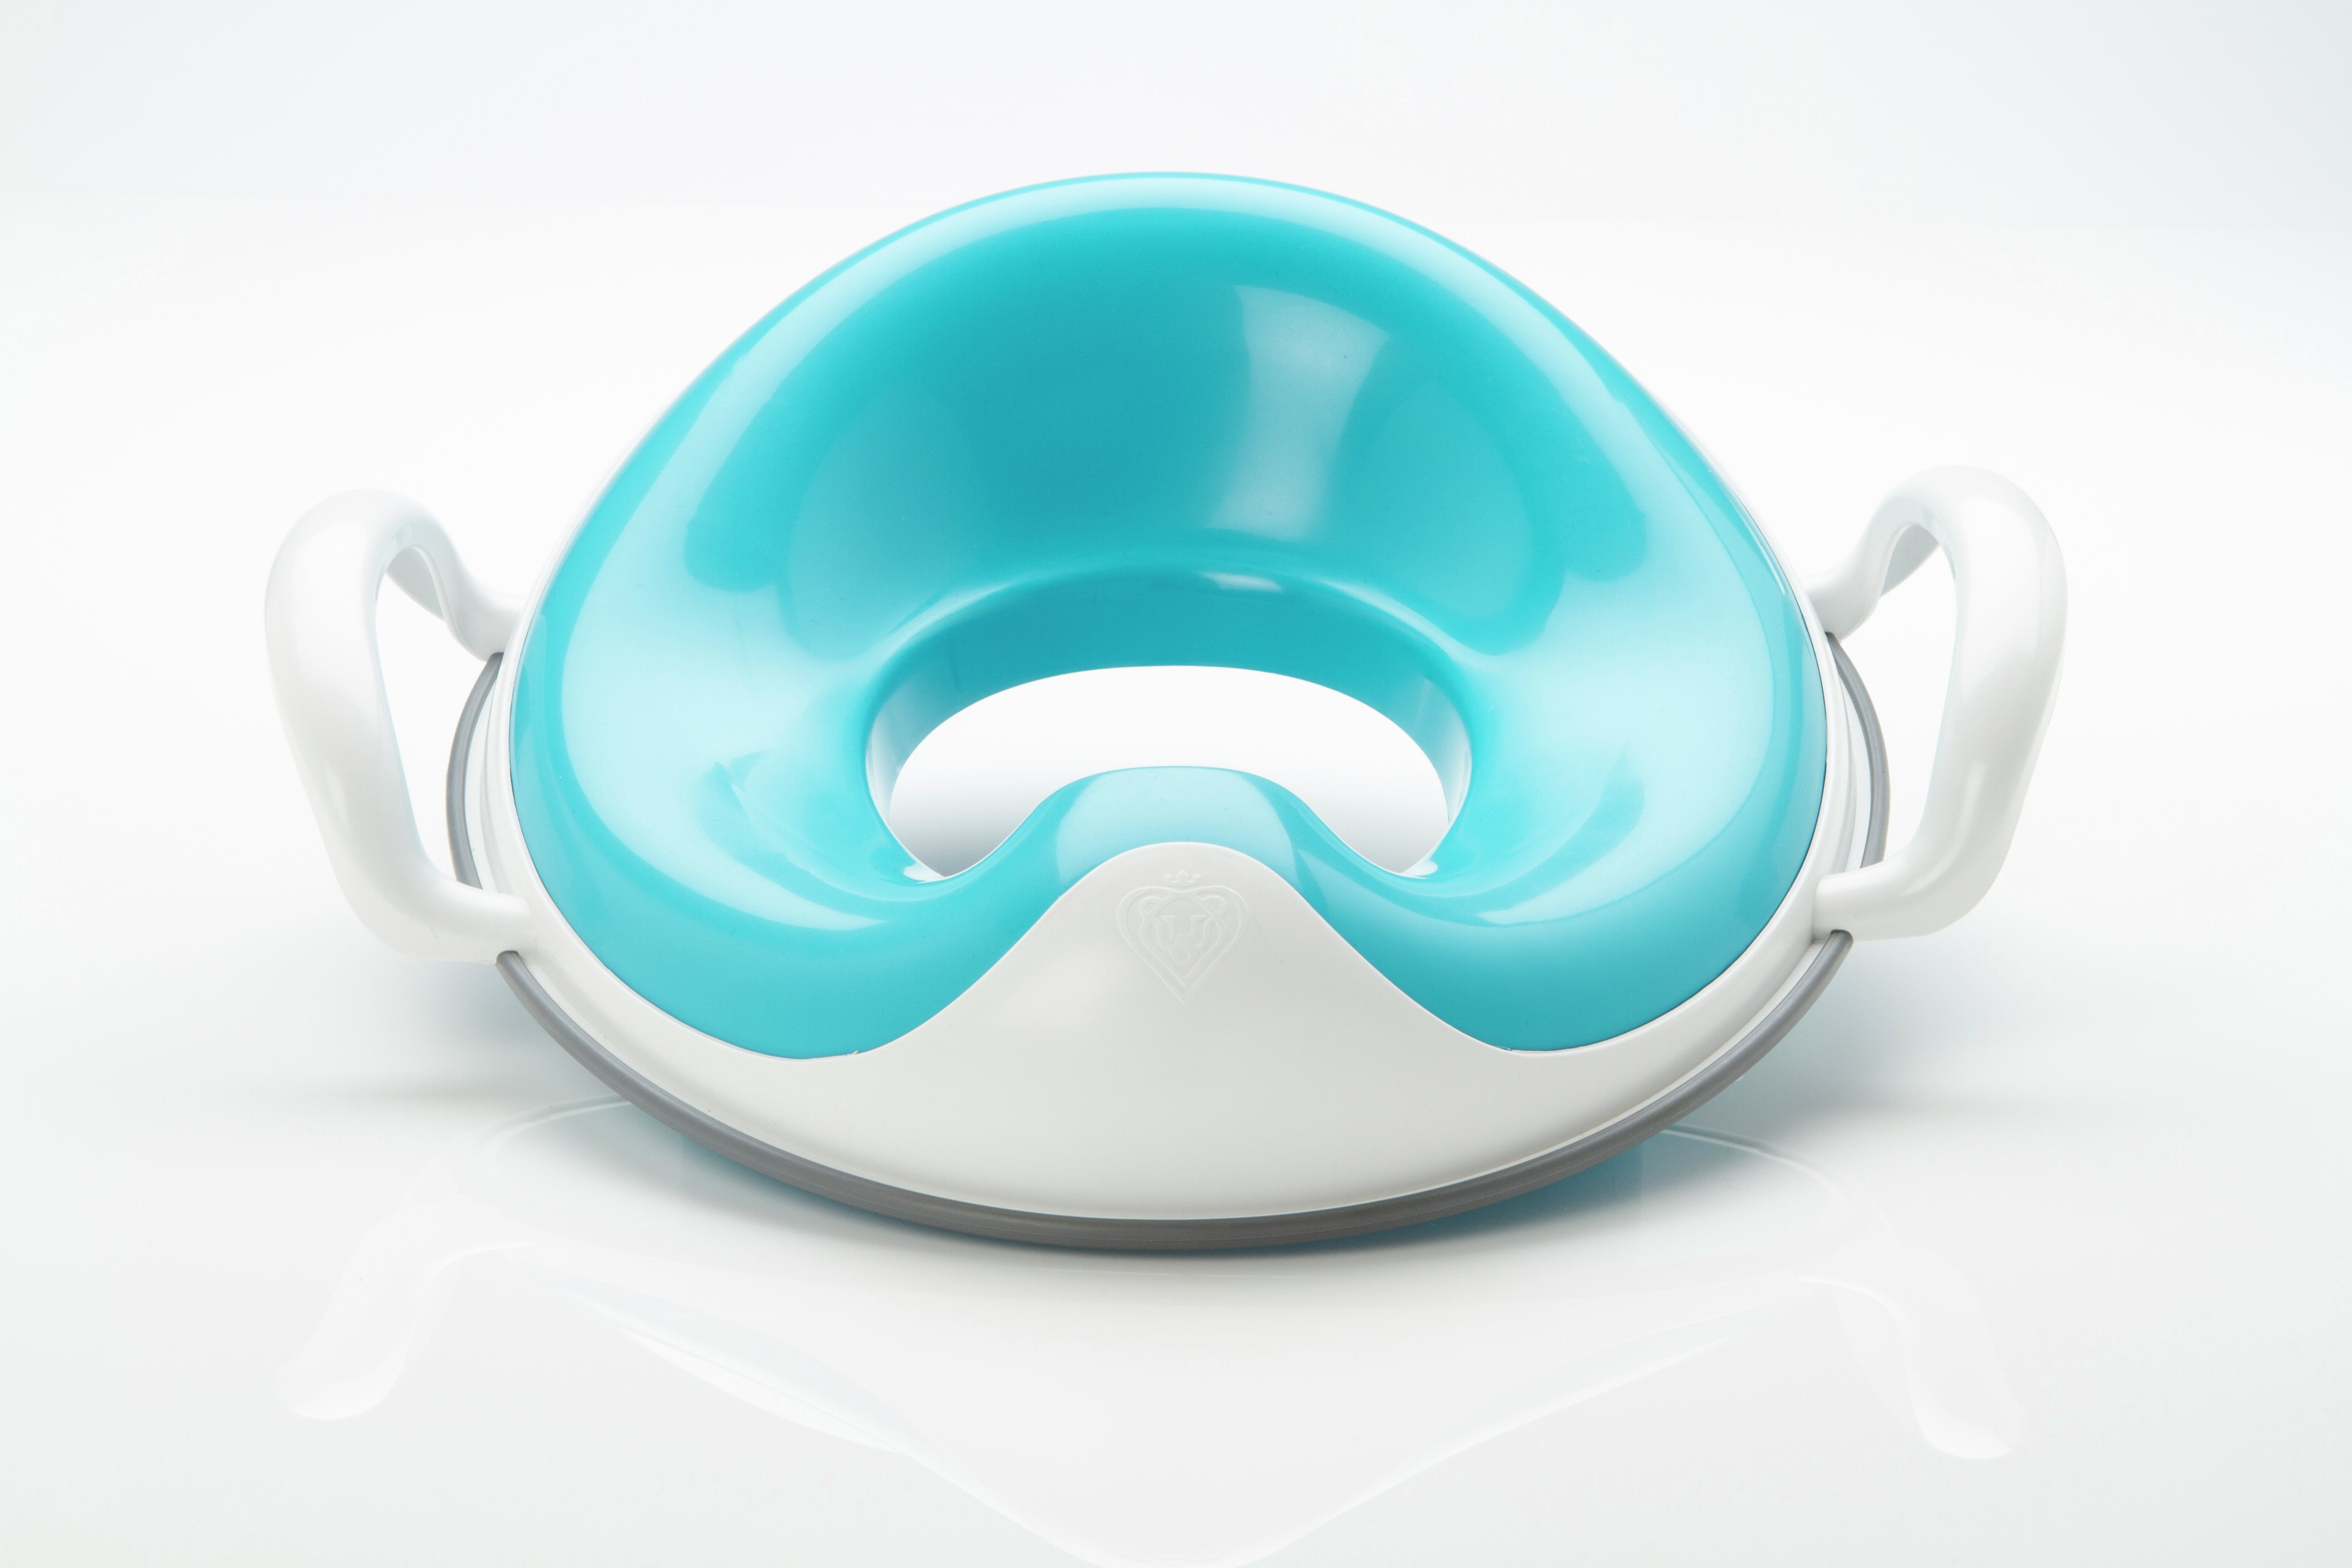 Prince Lionheart weePod Toilet Trainer - Berry Blue